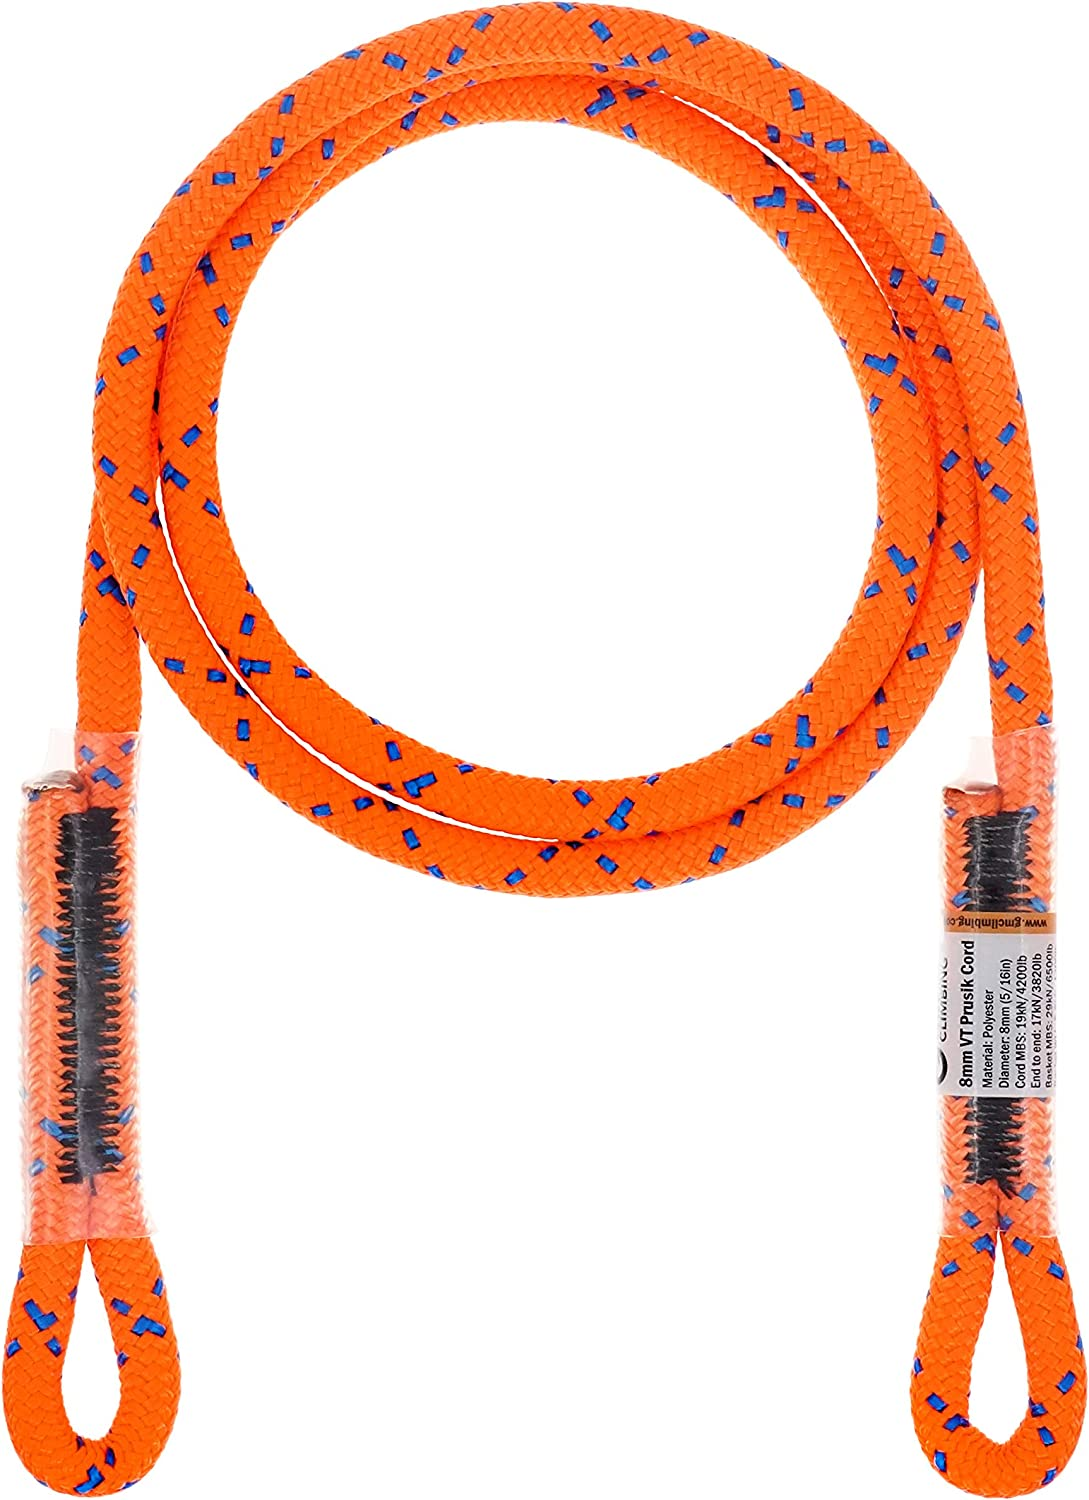 "GM CLIMBING 8mm (5/16"") Prusik Swen Eye-to-Eye Pre-Sewn 45 inch : Sports & Outdoors"